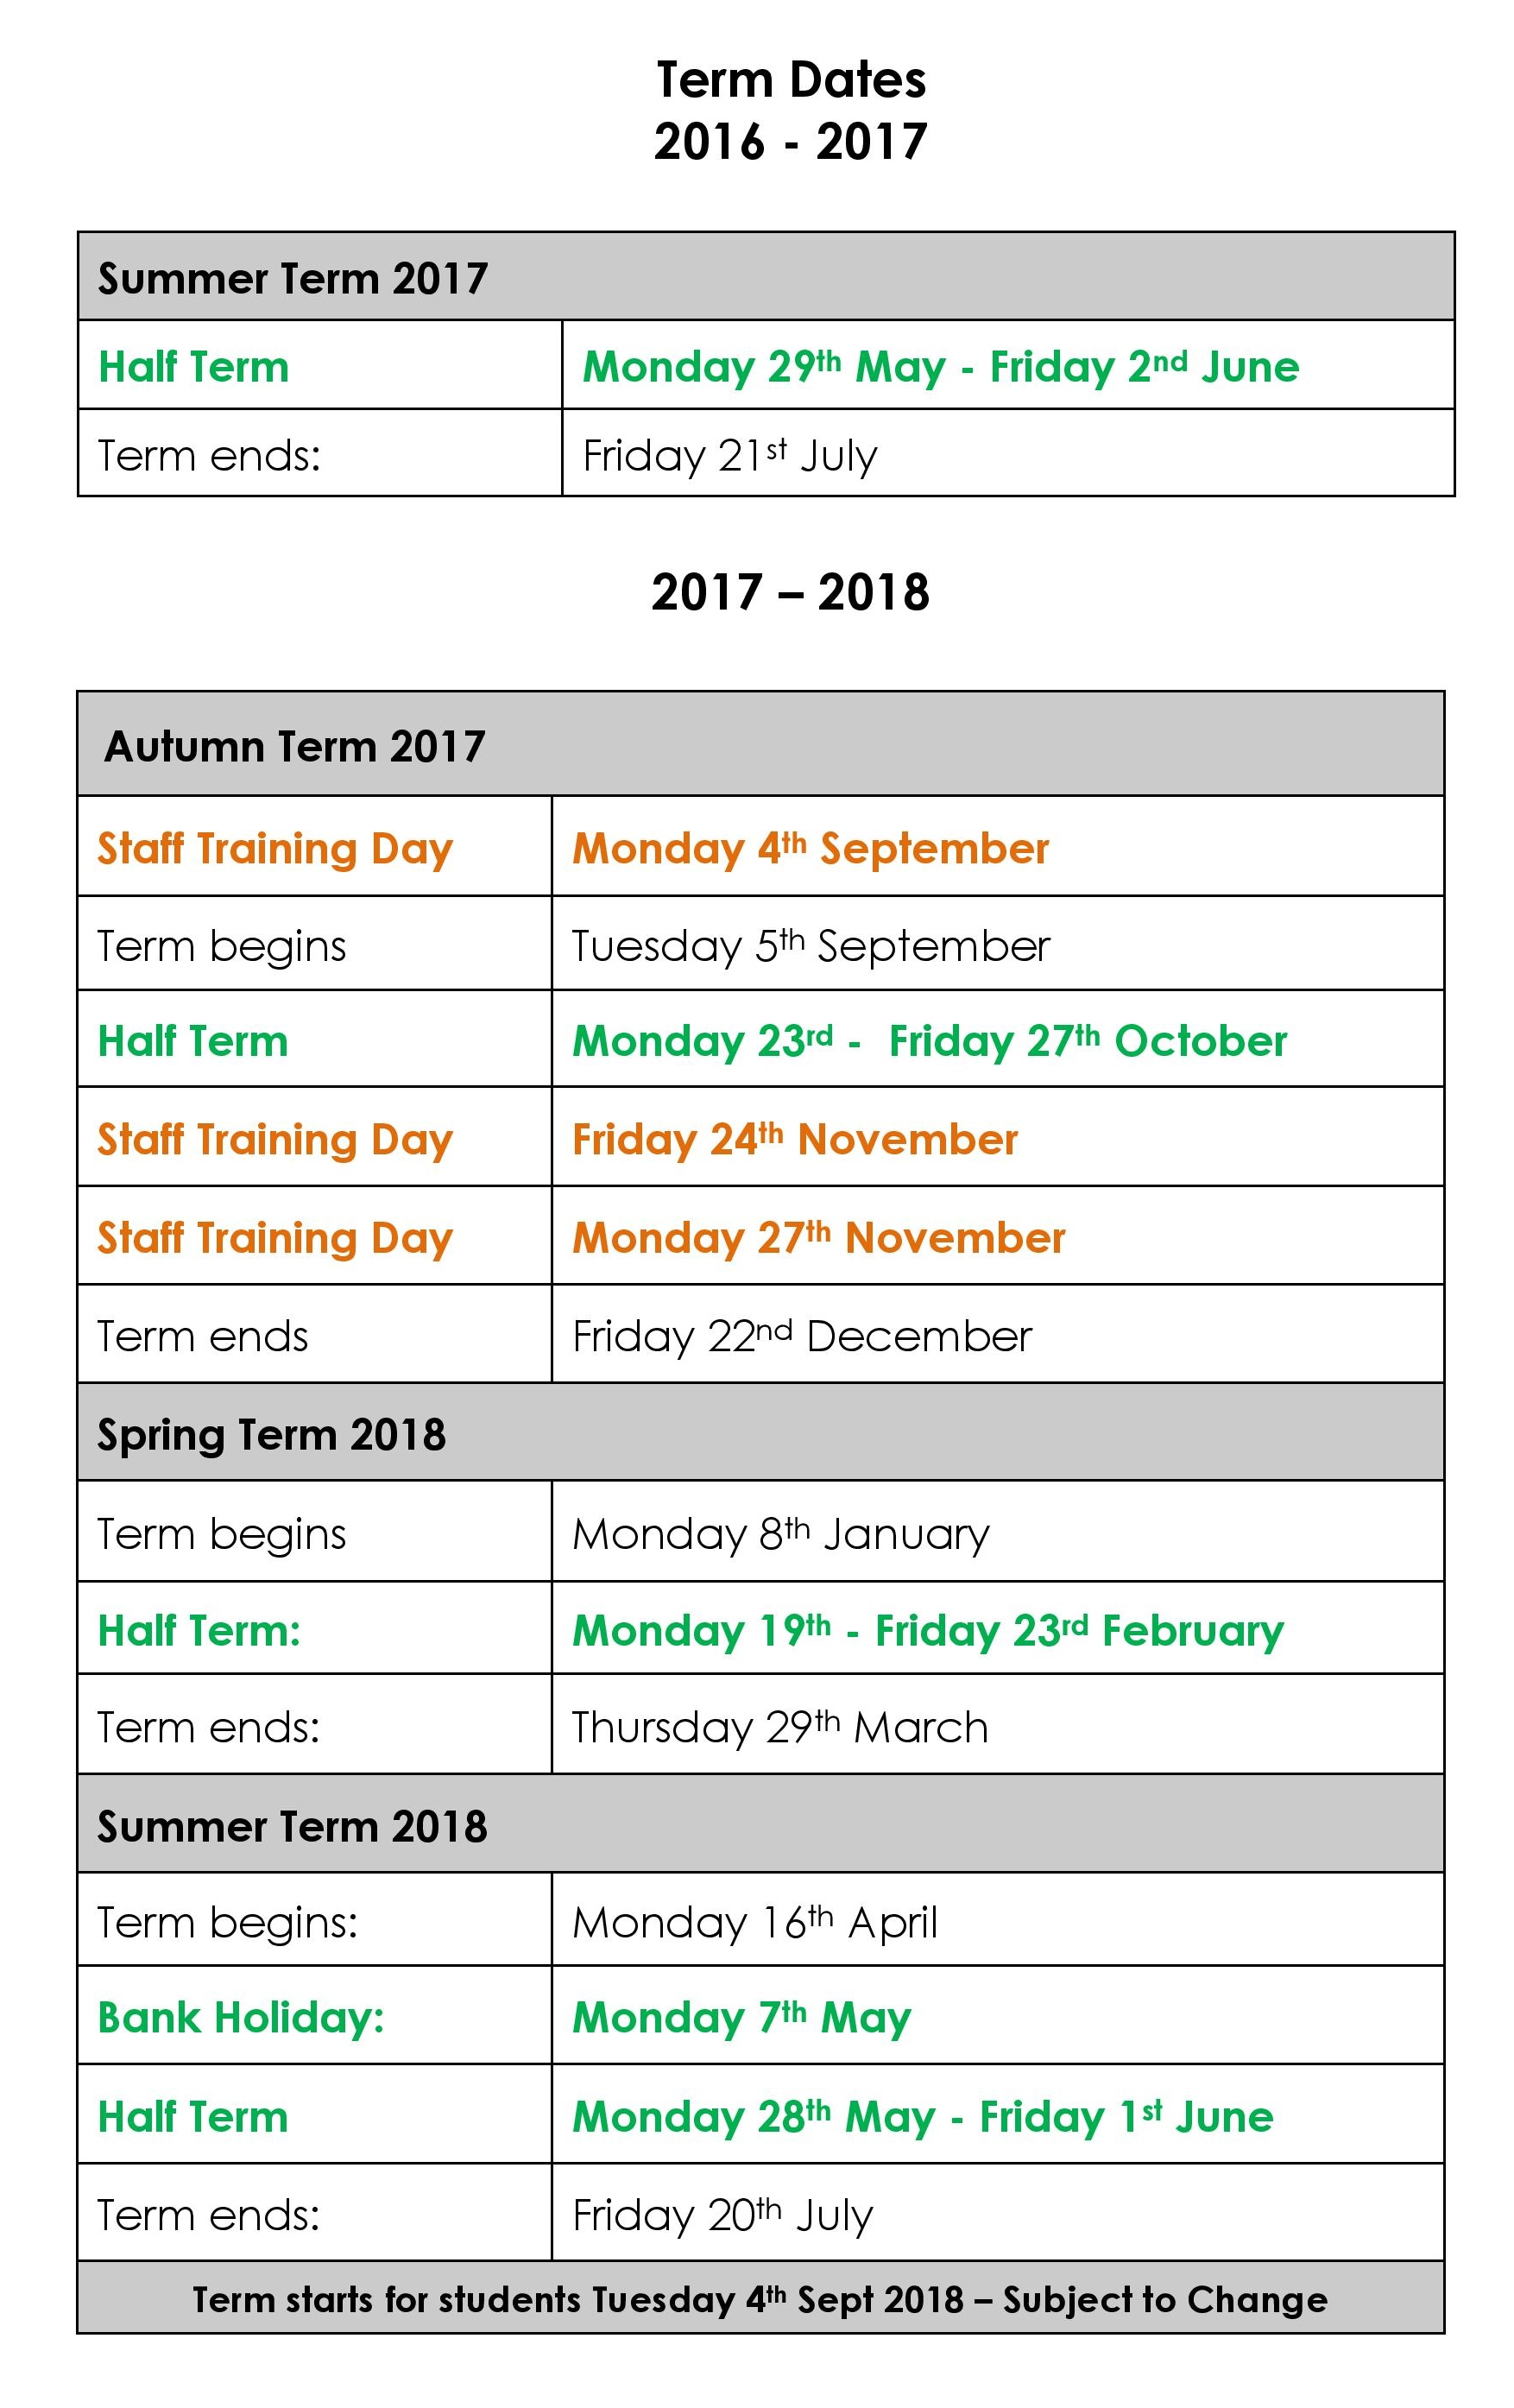 Term Dates - HT6 and 2017-18-page-001 (2).jpg